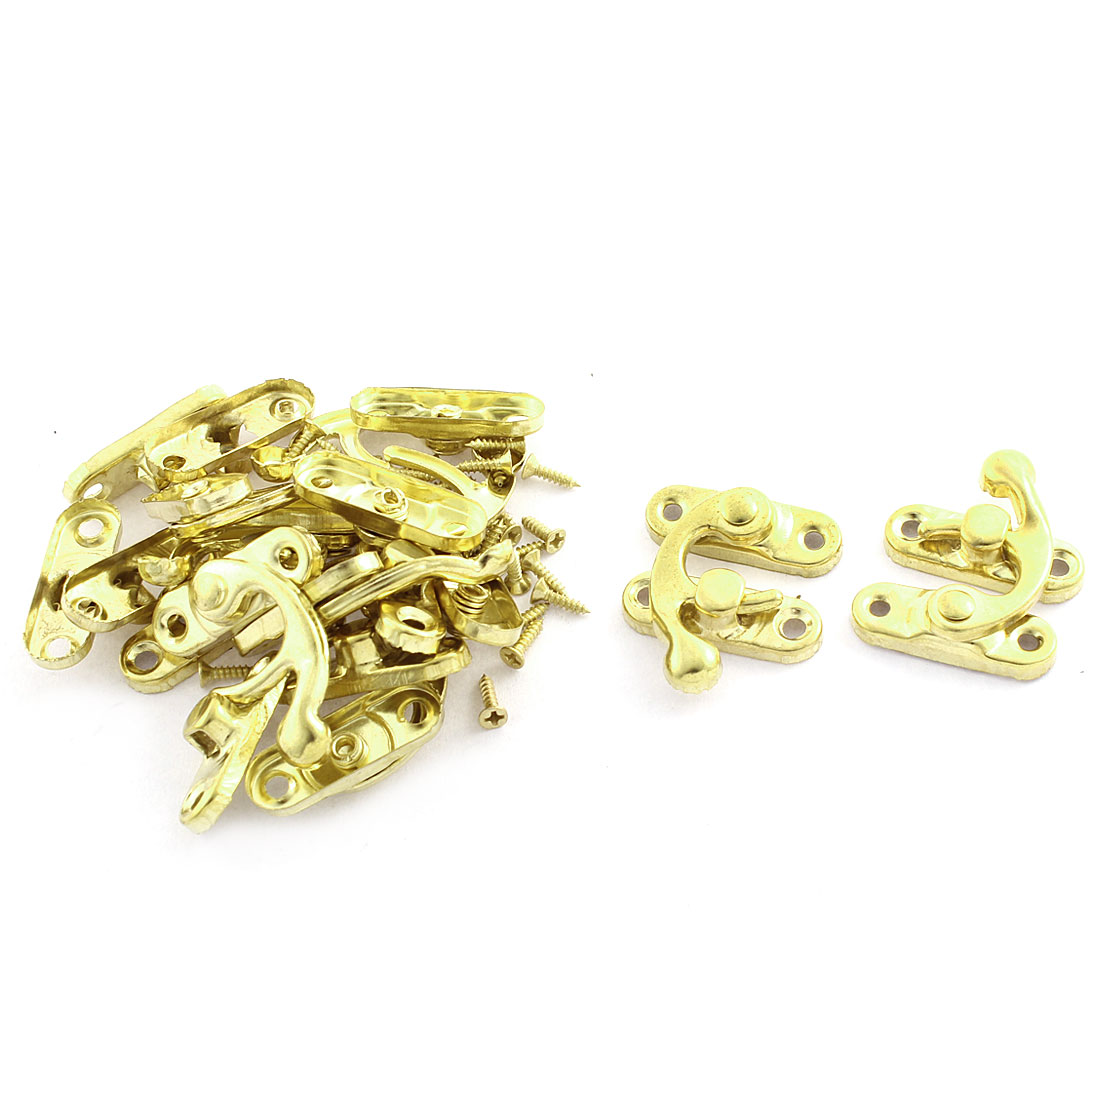 10 Pcs Right Swing Arm Clasp Screw Mounted Packing Parts Wooden Box Latch